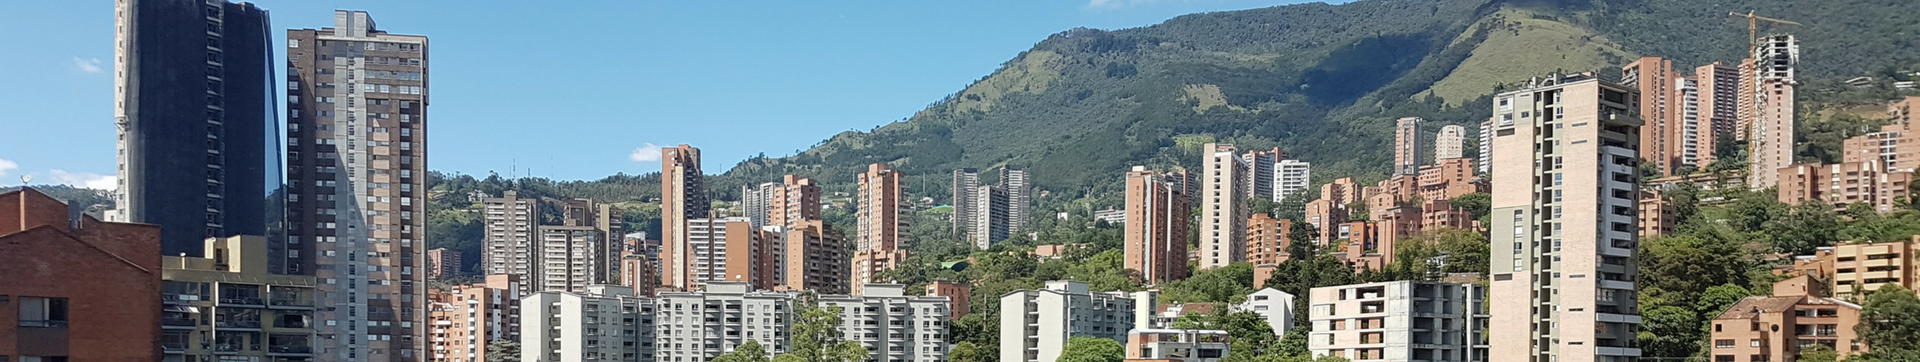 Where to Stay in Medellín During 7in7